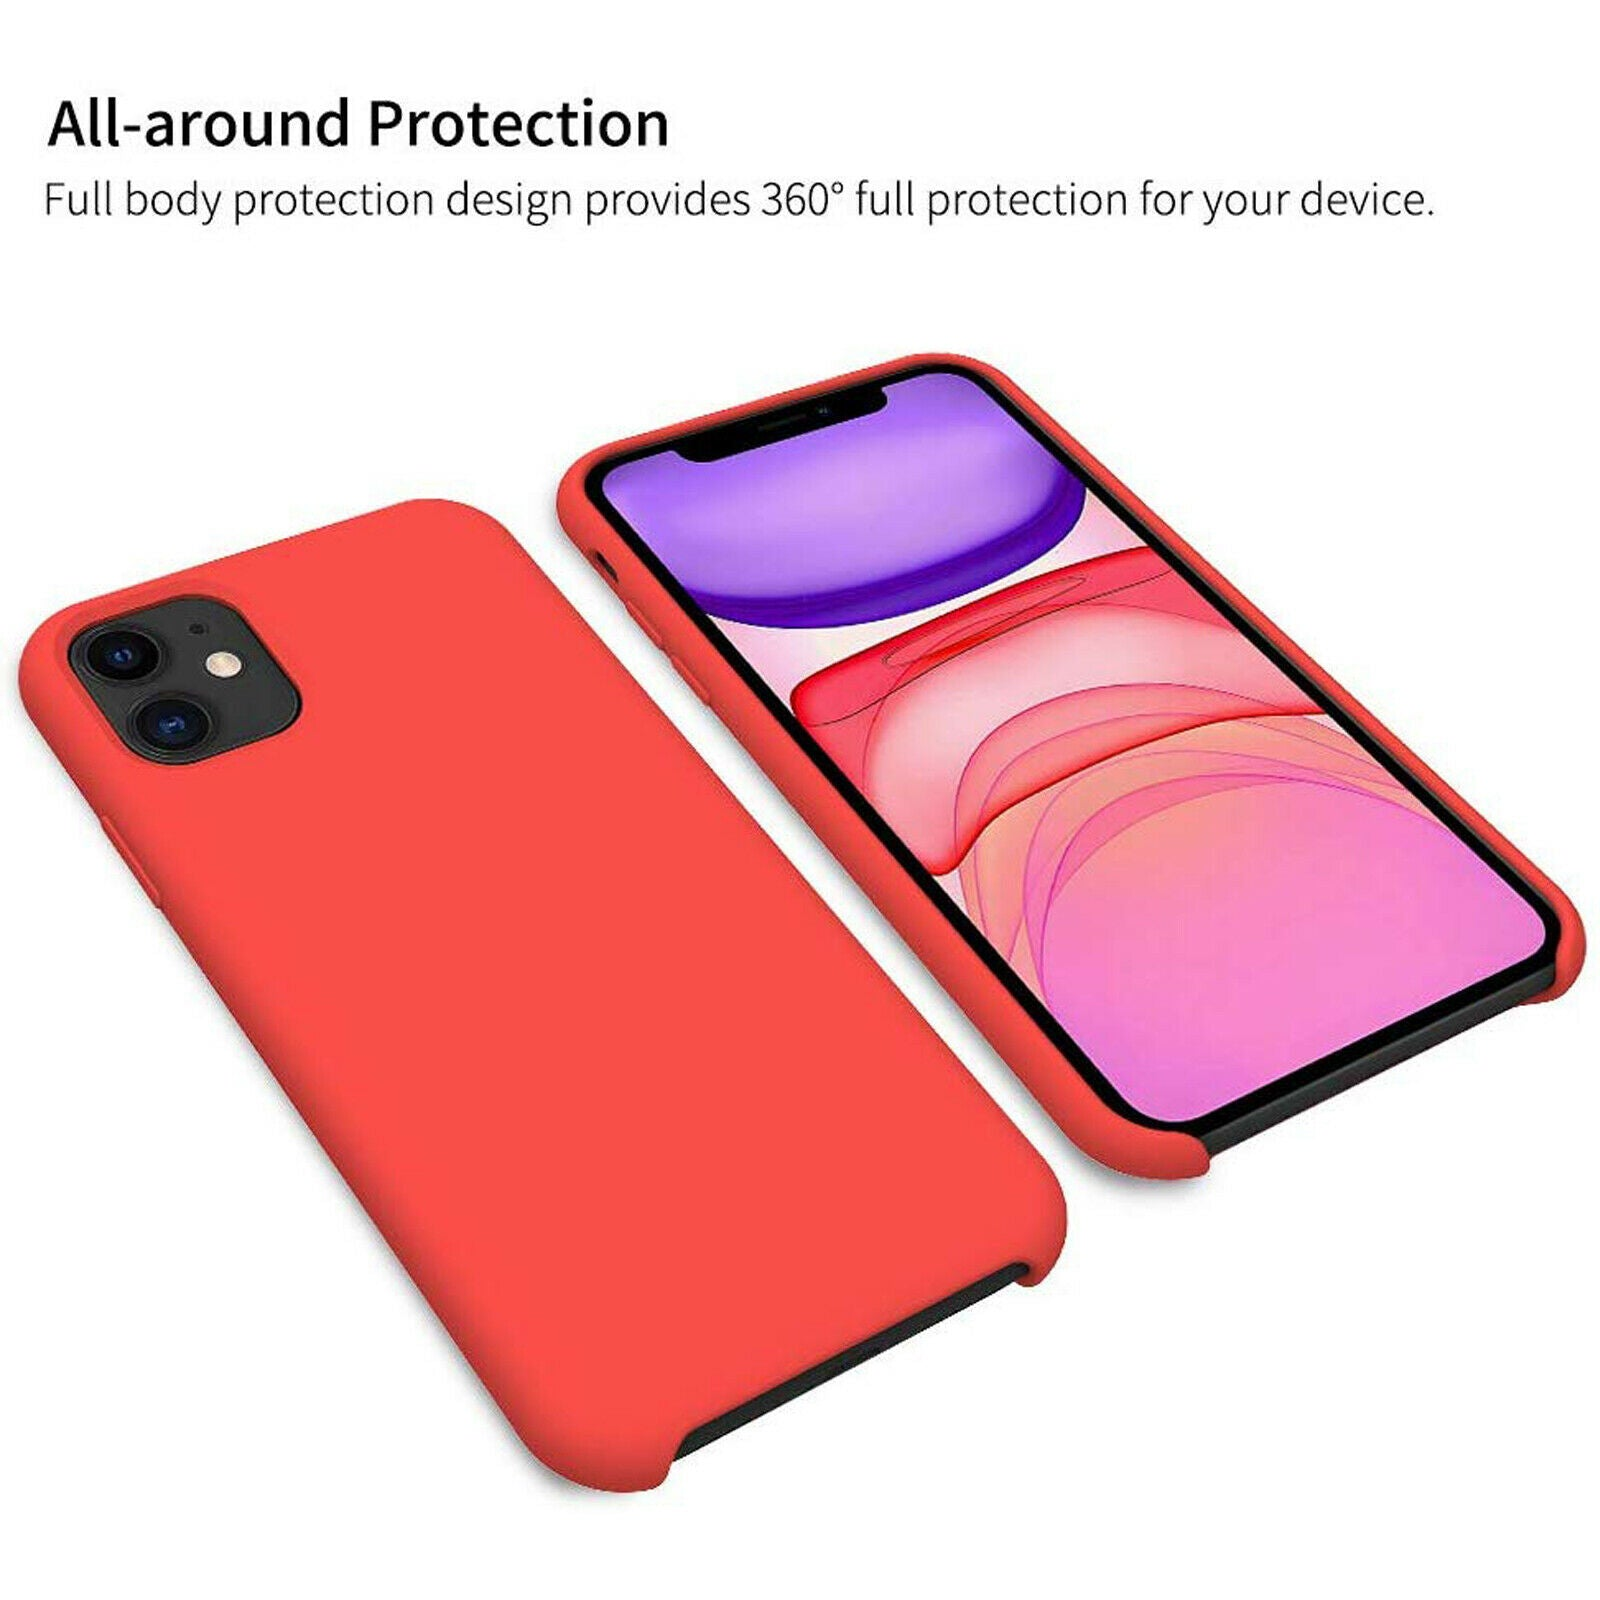 iPhone (6 up to XS Max) Silicone Case